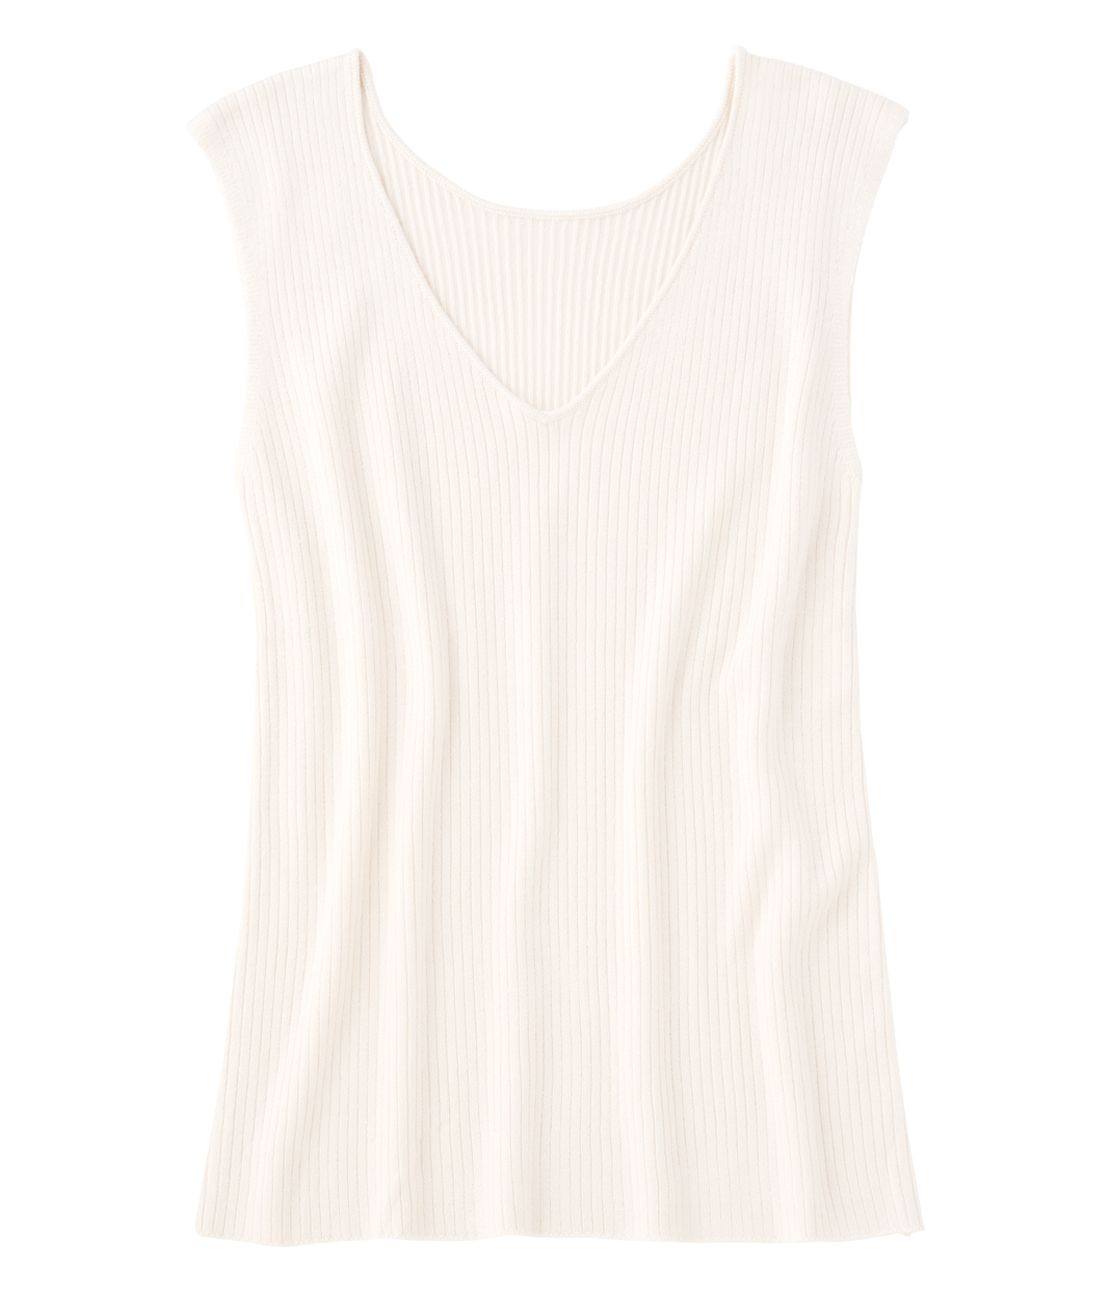 Rib knit sleeveless